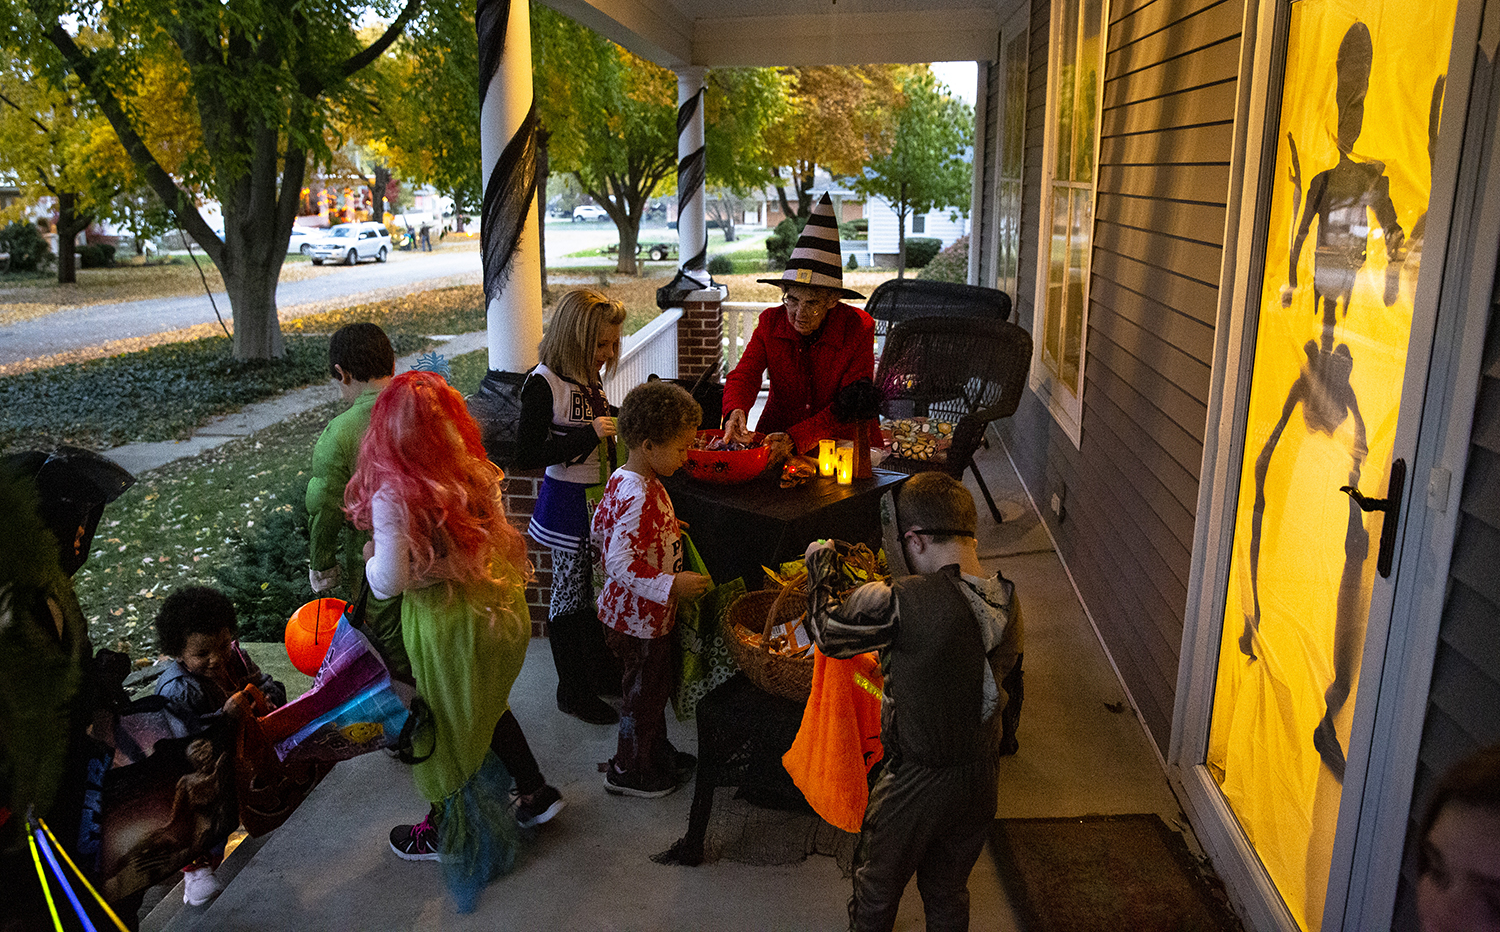 Anna May Fawns, 84, dishes up witches brew (purple Kool-Aid) and other goodies to trick or treaters from the porch of her daughter and son-in-law's home Wednesday, Oct. 31, 2018 in Williamsville, Ill. Most of the people in town are used to seeing Fawns on the porch. She used to live in the house until her daughter's family bought it, and she's shared her Halloween cheer for close to 50 years, she says. [Rich Saal/The State Journal-Register]